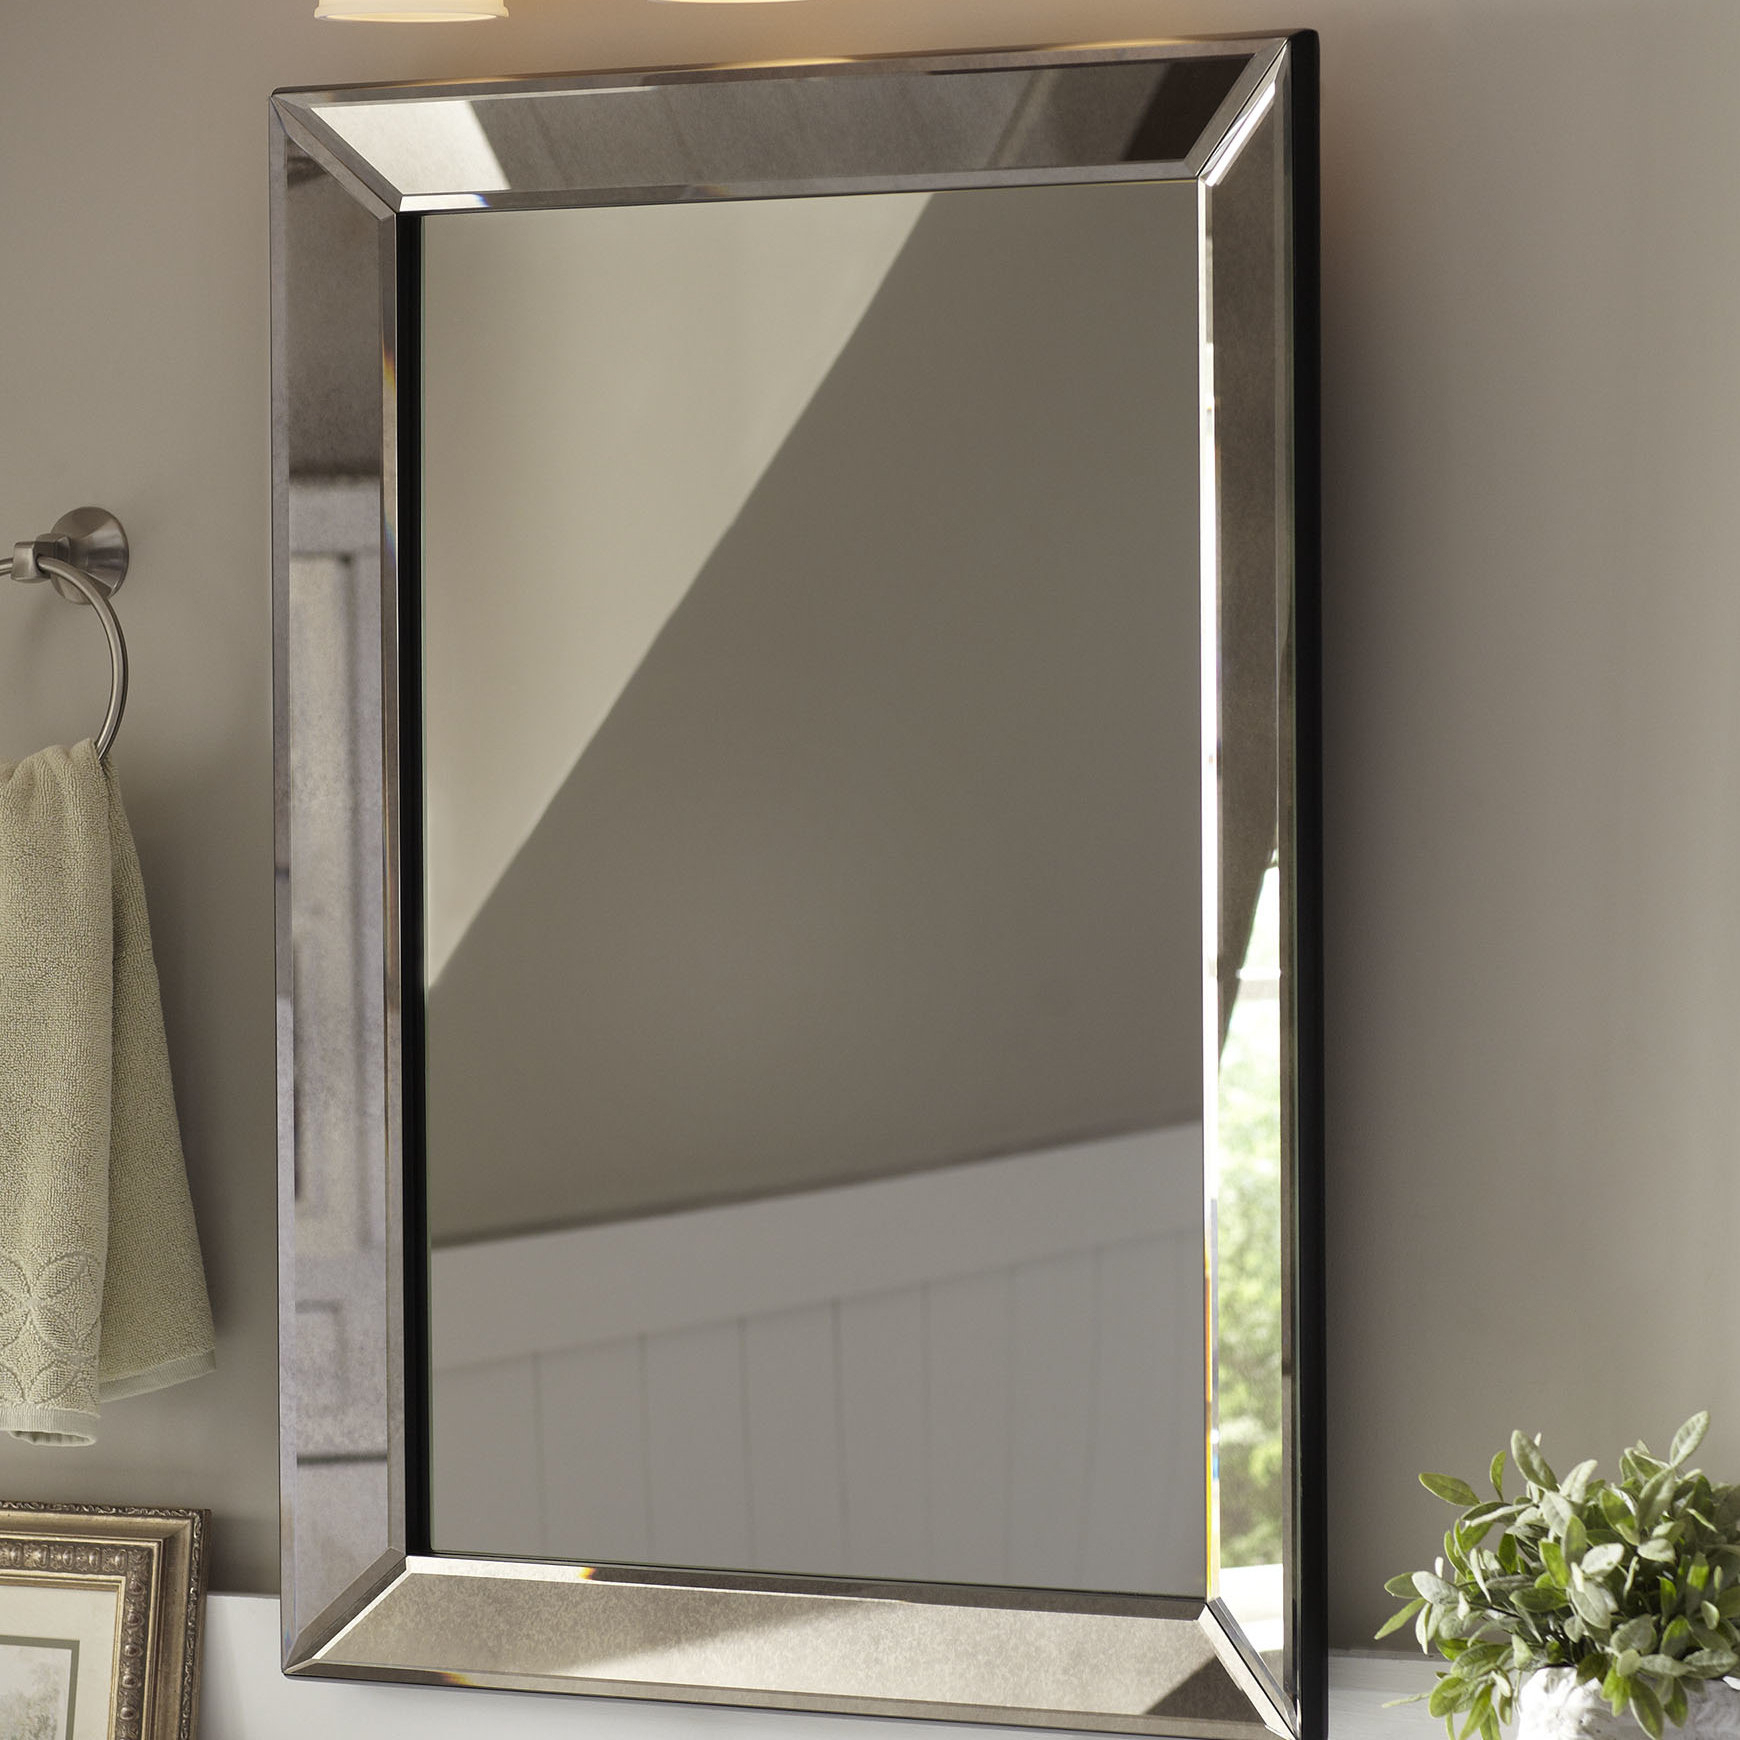 Farmhouse Mirrors | Birch Lane Intended For Grid Accent Mirrors (Image 5 of 20)